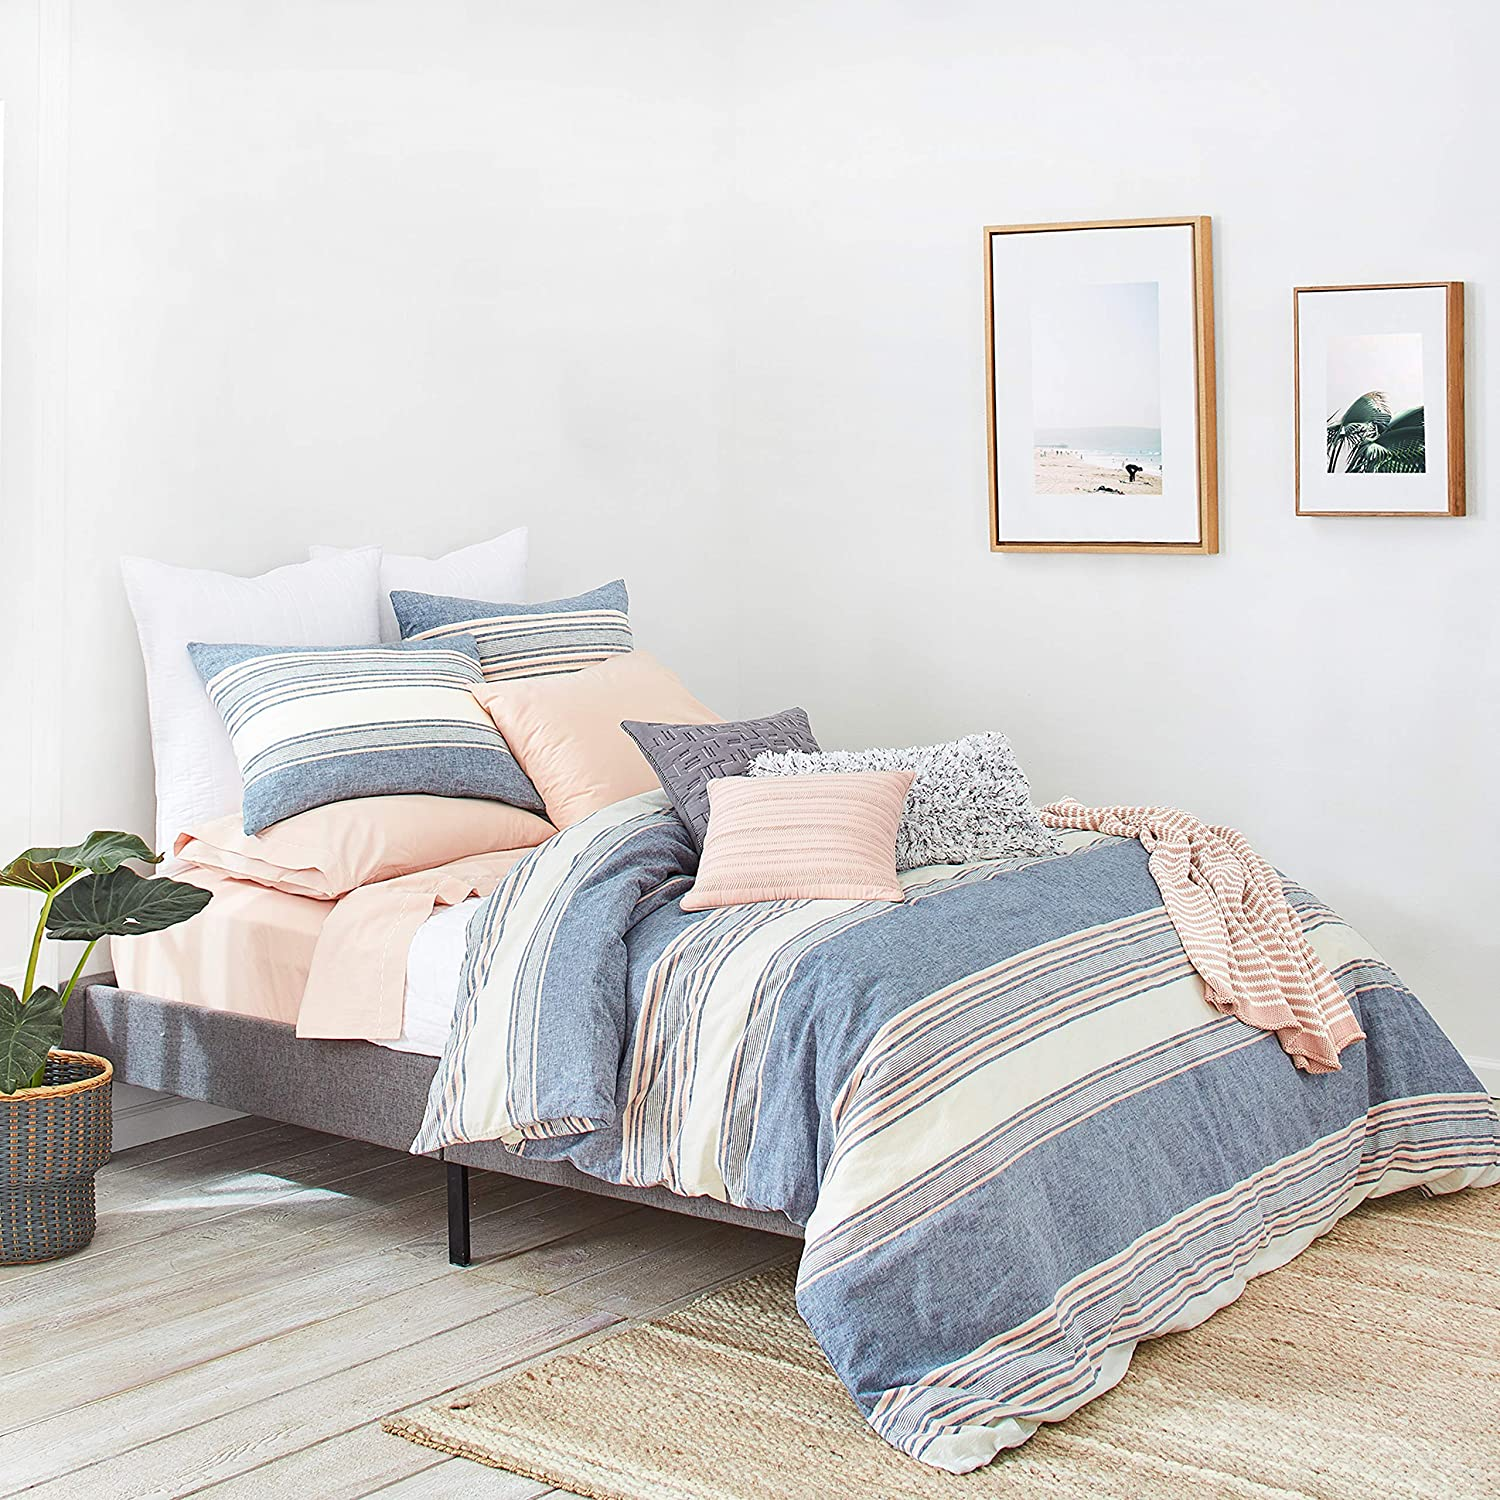 Splendid Home Tuscan Stripe Duvet Set, Full/Queen, Navy/Multi